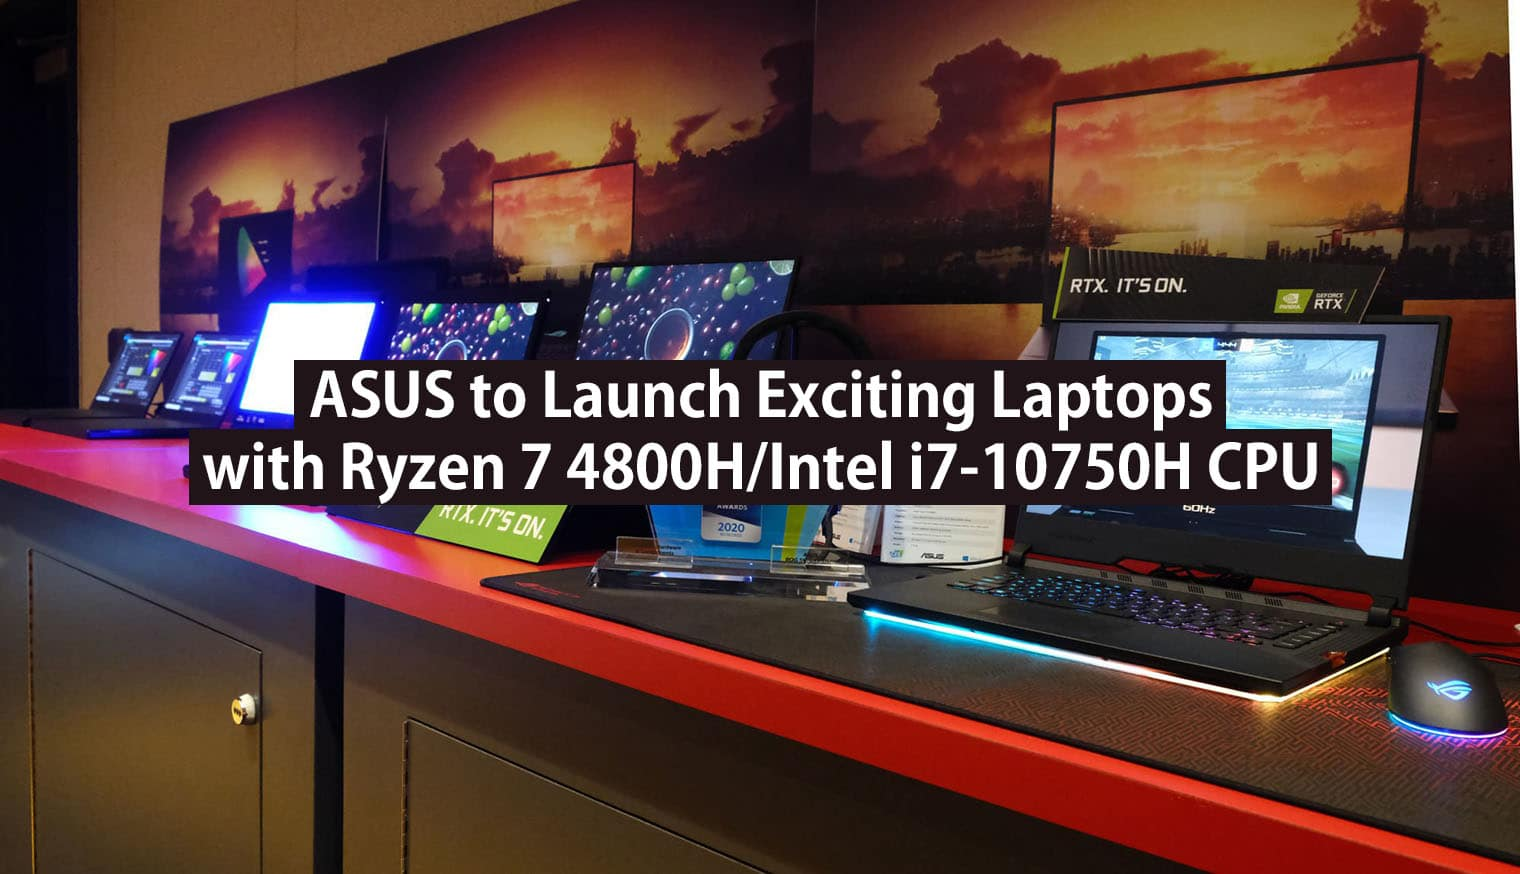 upcoming asus laptops with ryzen 7 4800HS and i7-10750H